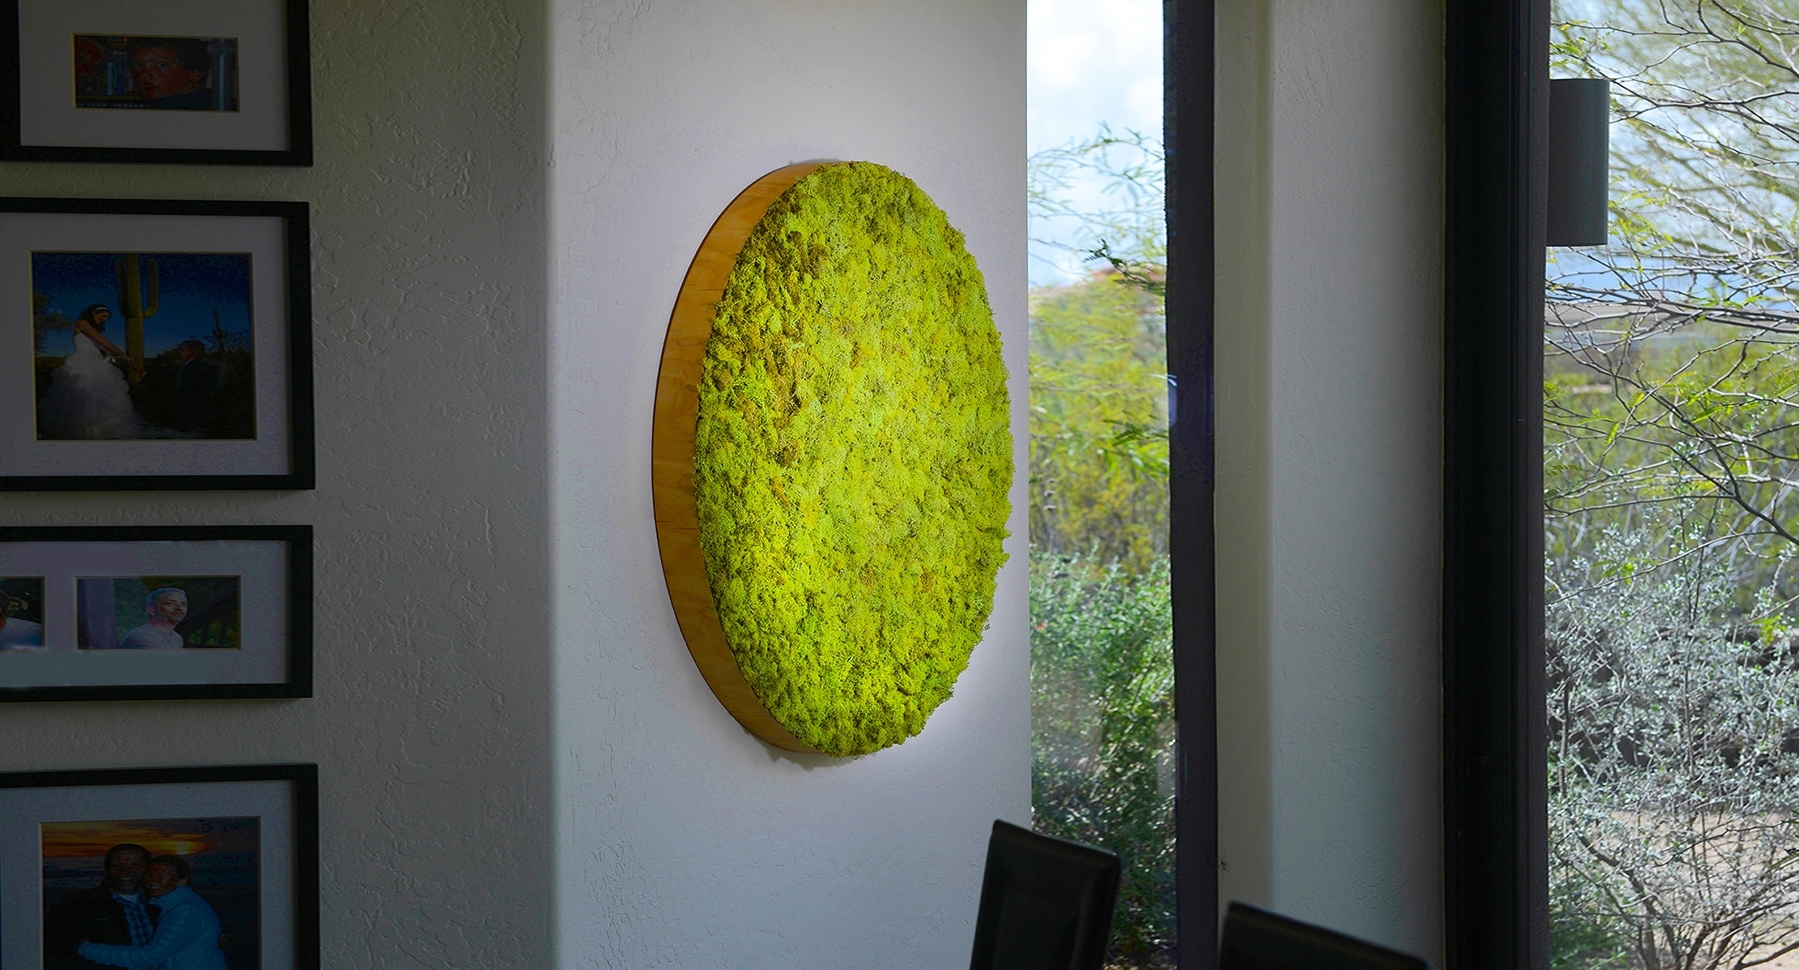 Widely Used Mosswallart Pieces For Sale Online – Best Living Artwork For Home Intended For Moss Wall Art (View 10 of 15)